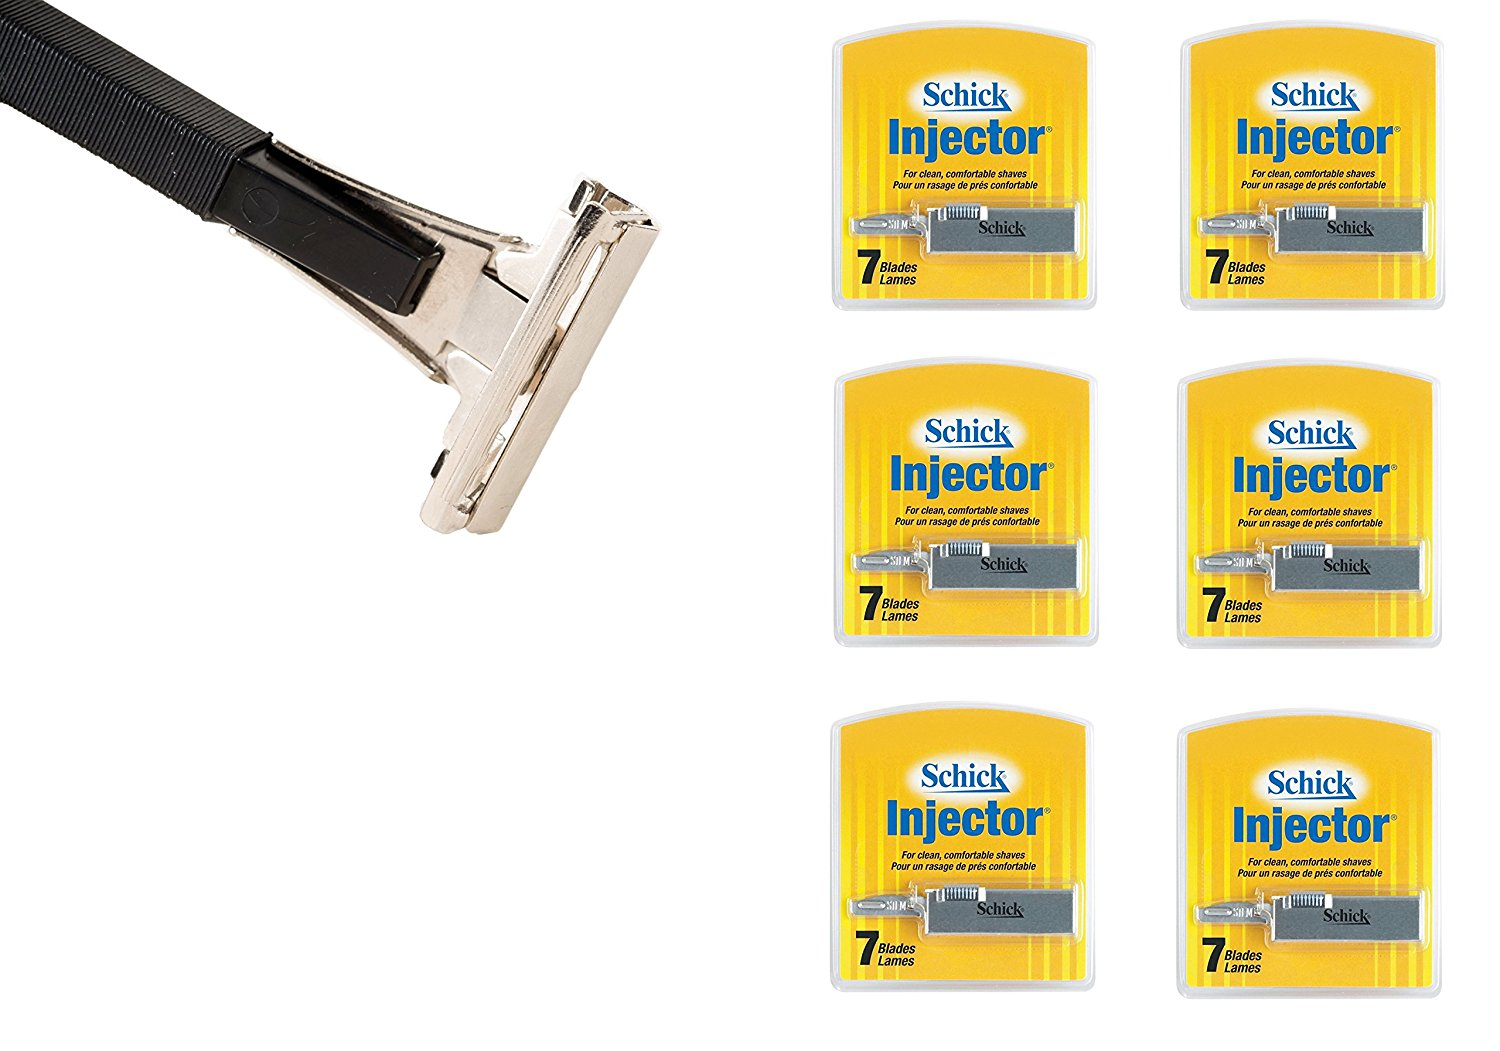 Shave Classic Single Edge Razor Handle with Schick Injector Refill Blades 7 Ct. (Pack of 6) ! Razor Compatible with Schick Injector Razor Blades !